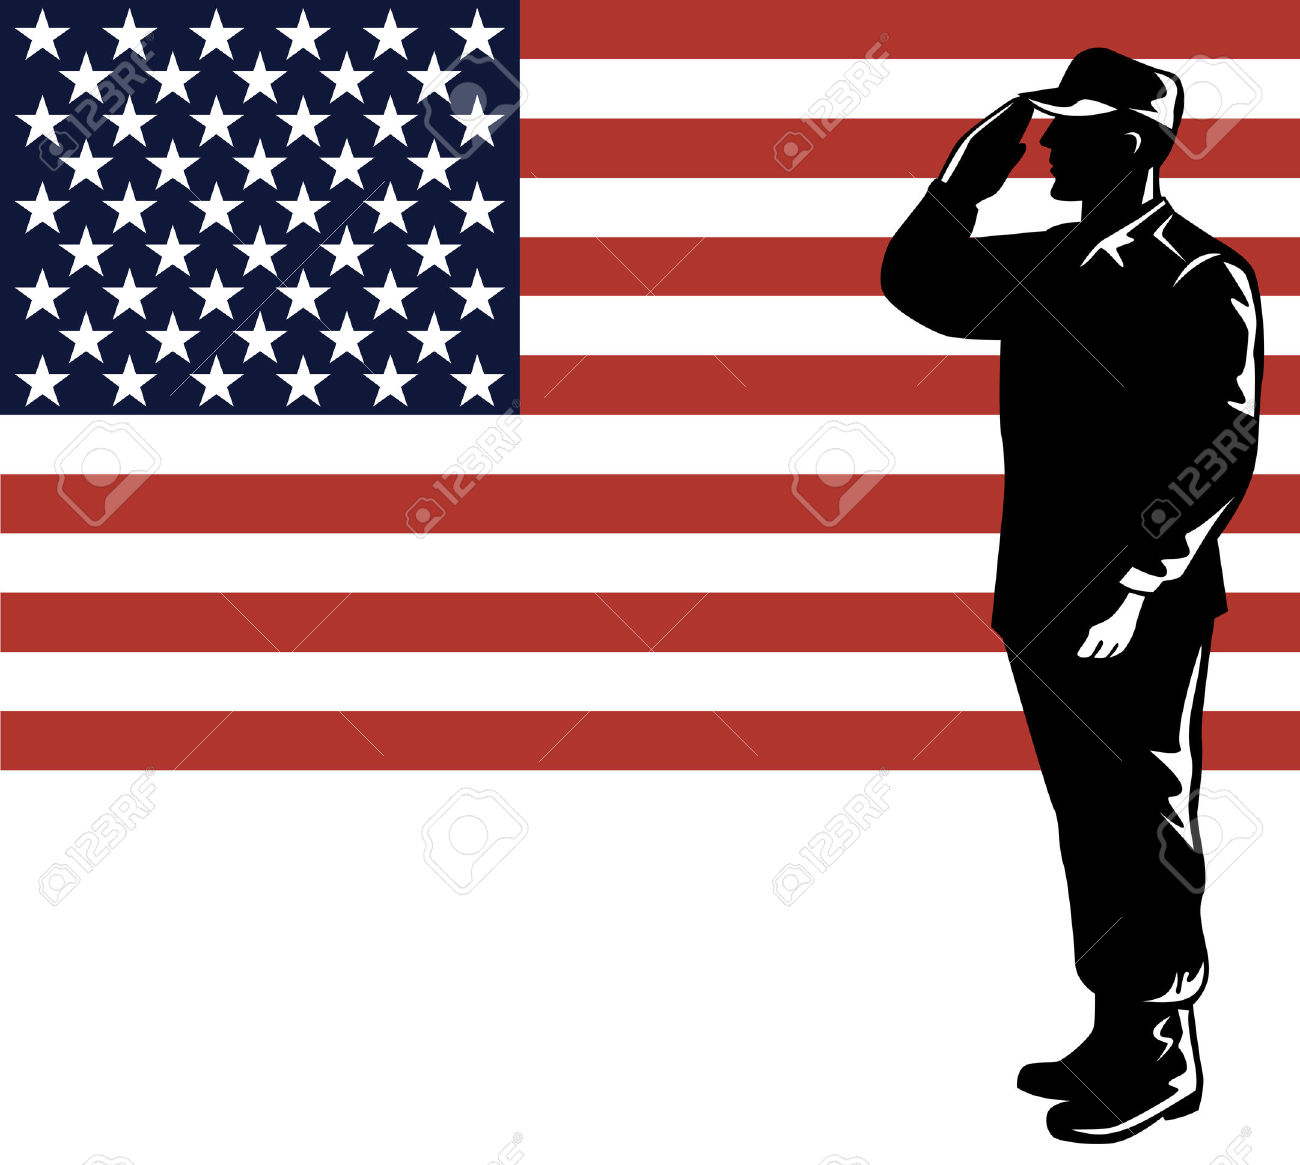 United states flag army clipart jpg stock American Soldier With Flag Royalty Free Cliparts, Vectors, And ... jpg stock